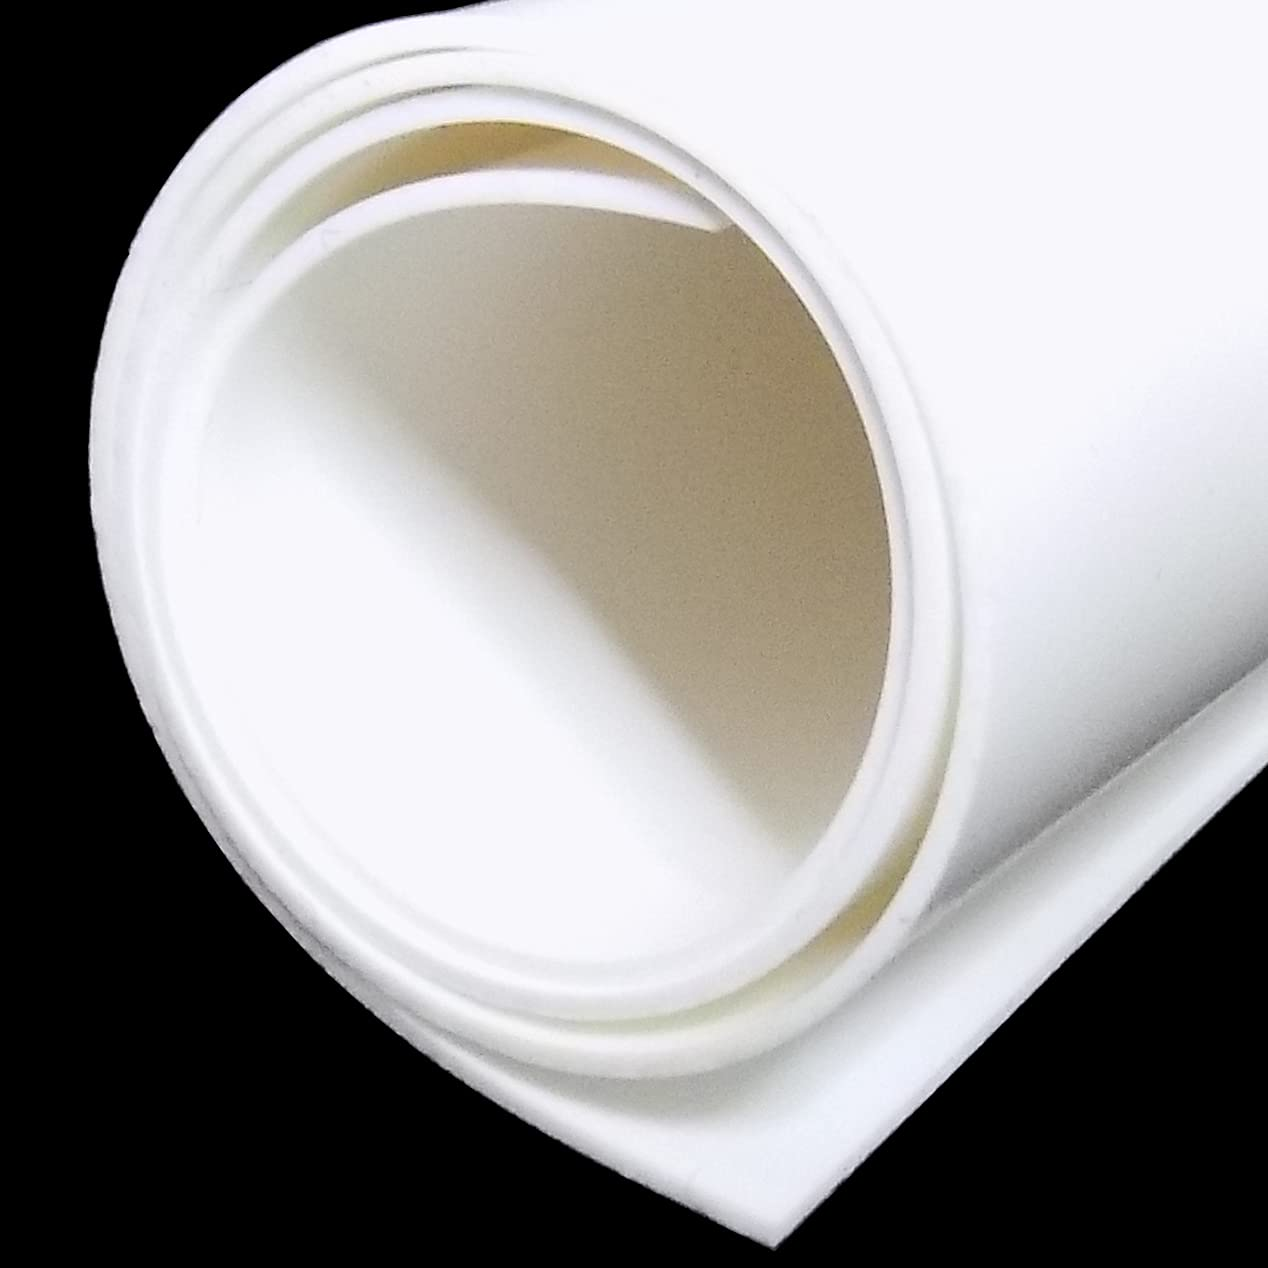 White Silicone Rubber Sheet, 60A Duro, 1/32 x 9 x 12 Inch, Food Grade, Made in the USA, No Adhesive Backing, High Temp Heavy Duty for Gaskets DIY Food Covers Lids Sealing Material Pads Oven Protection